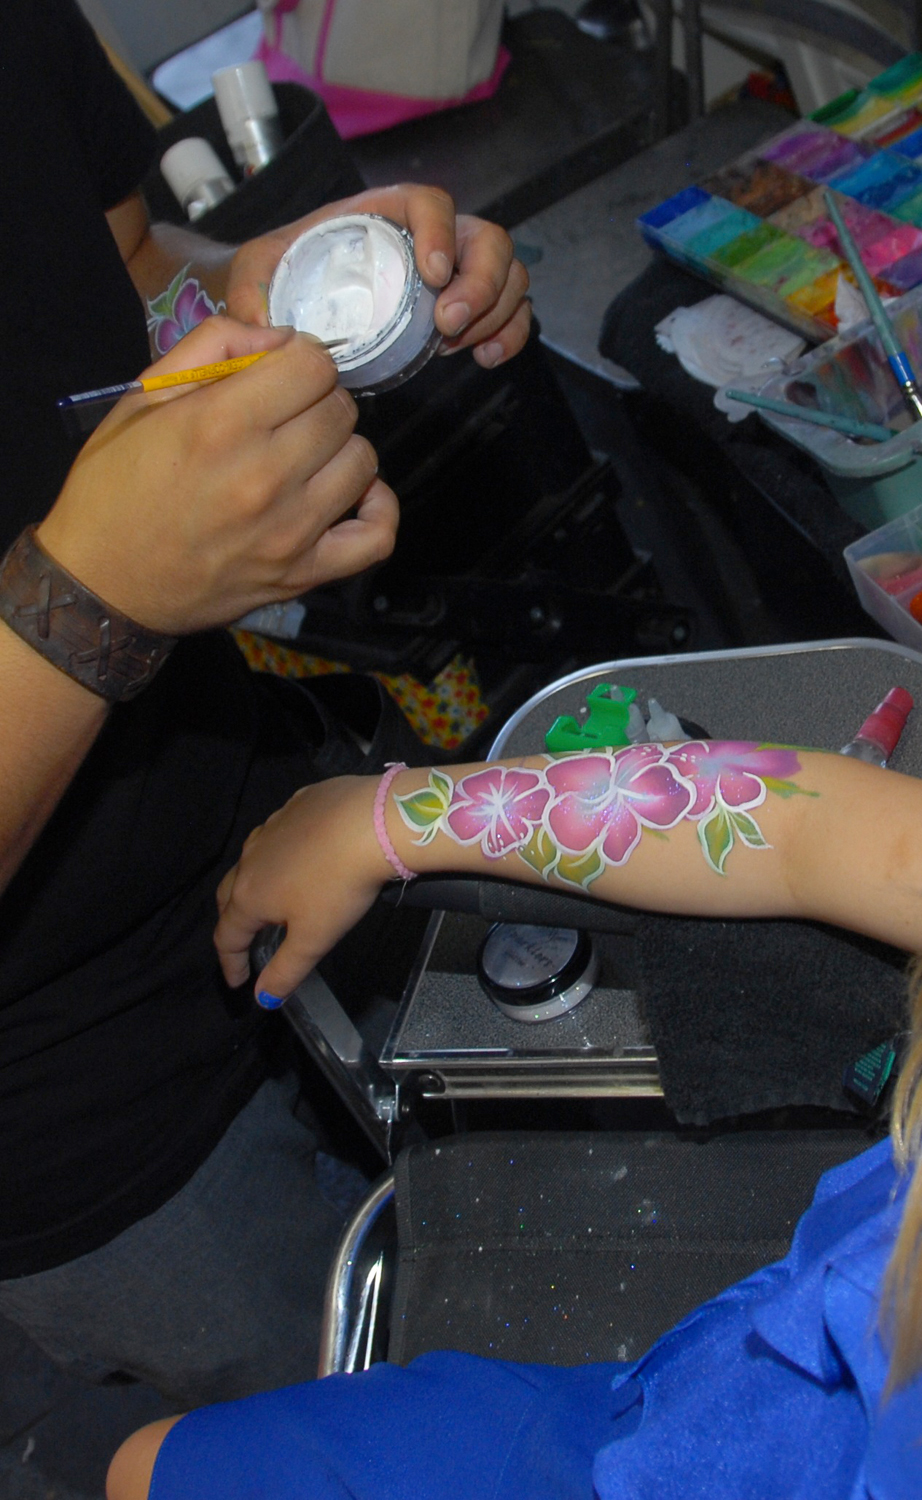 tarynco-events-kids-party-art-carnival-themed-face-painting.jpg